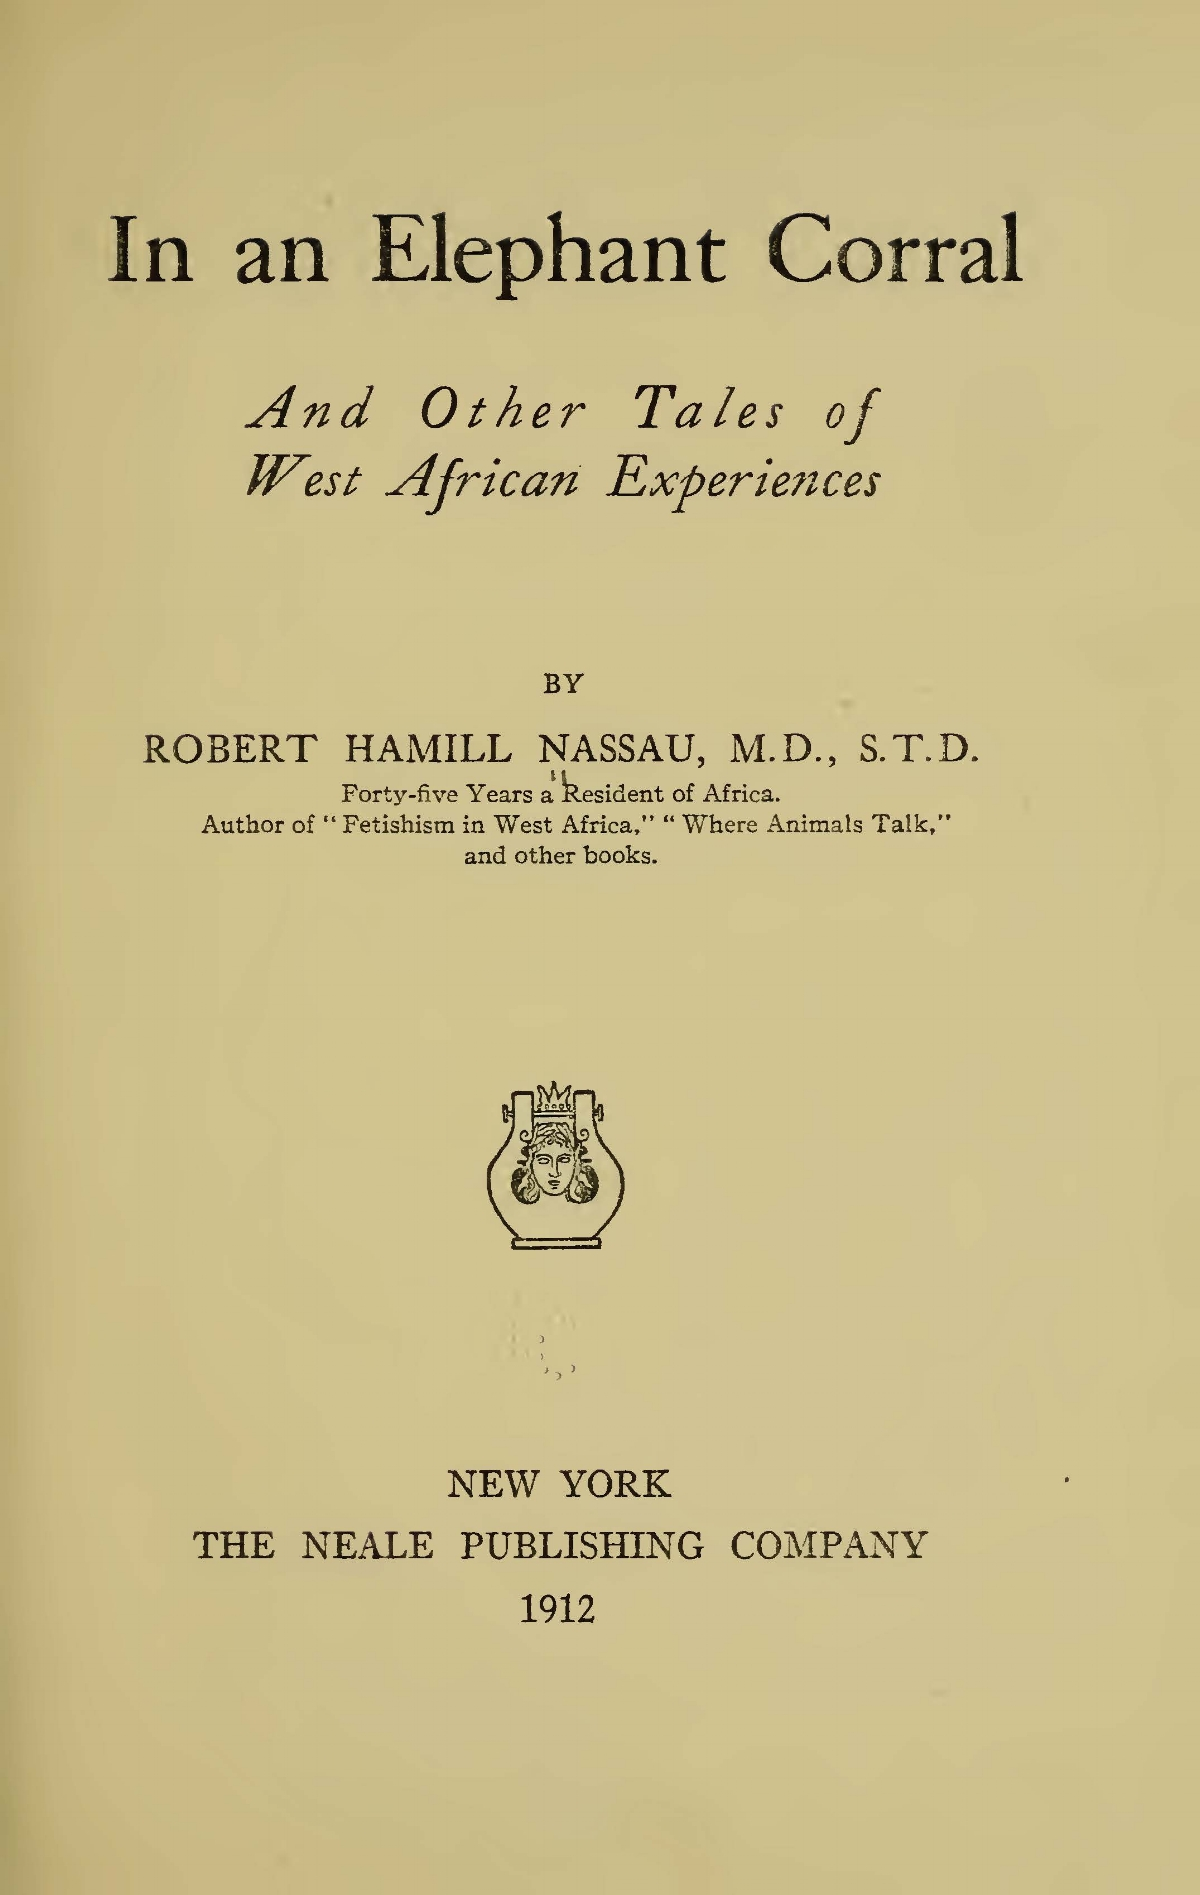 Nassau, Robert Hamill, In an Elephant Corral Title Page.jpg